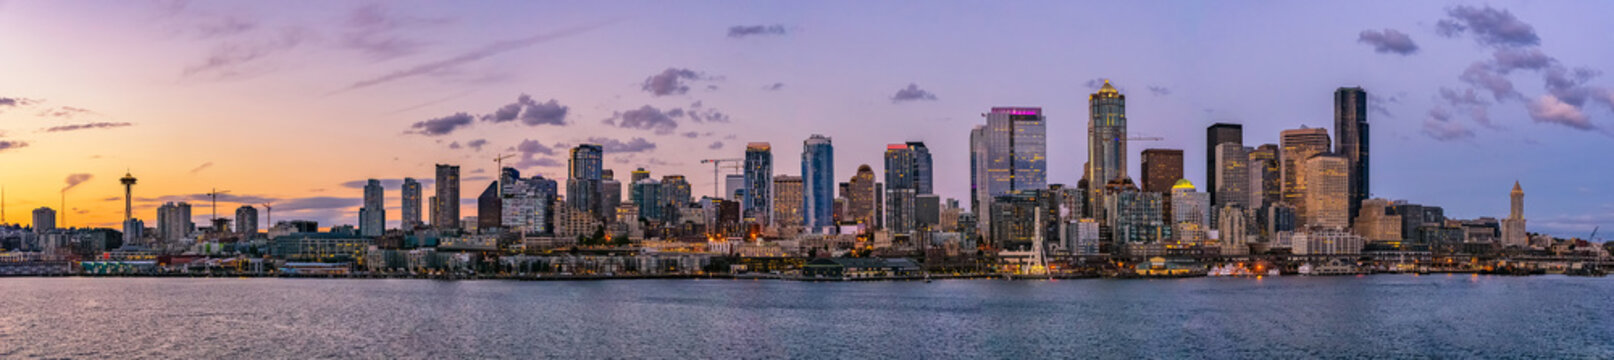 Beautiful Seattle skyline or cityscape from Elliot Bay, Puget Sound, at dusk or sunrise, Washington state, USA.